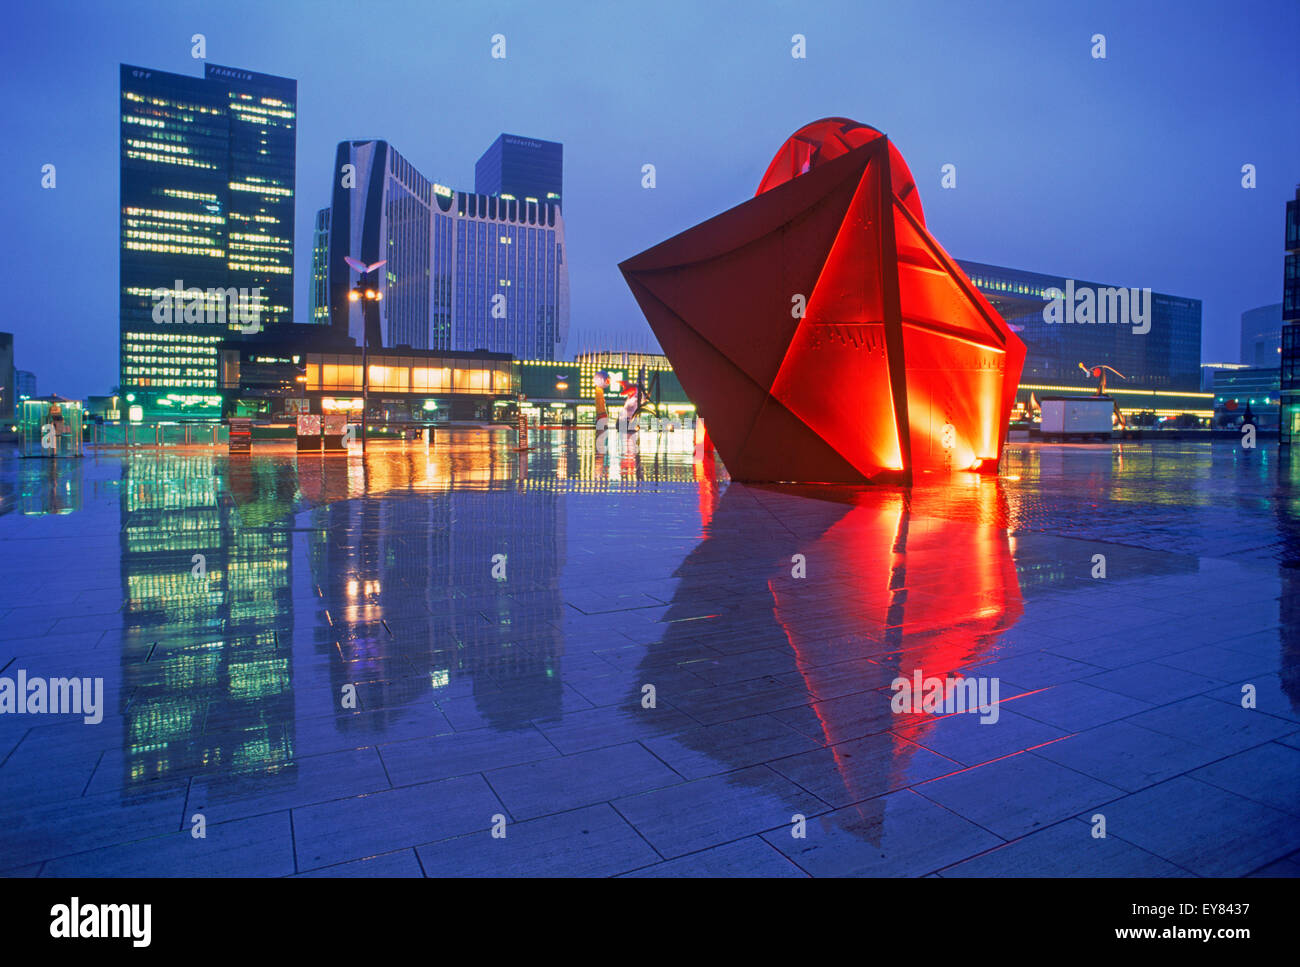 The Arch and modern sculptures at La Defense reflecting of wet surface on rainy night - Stock Image